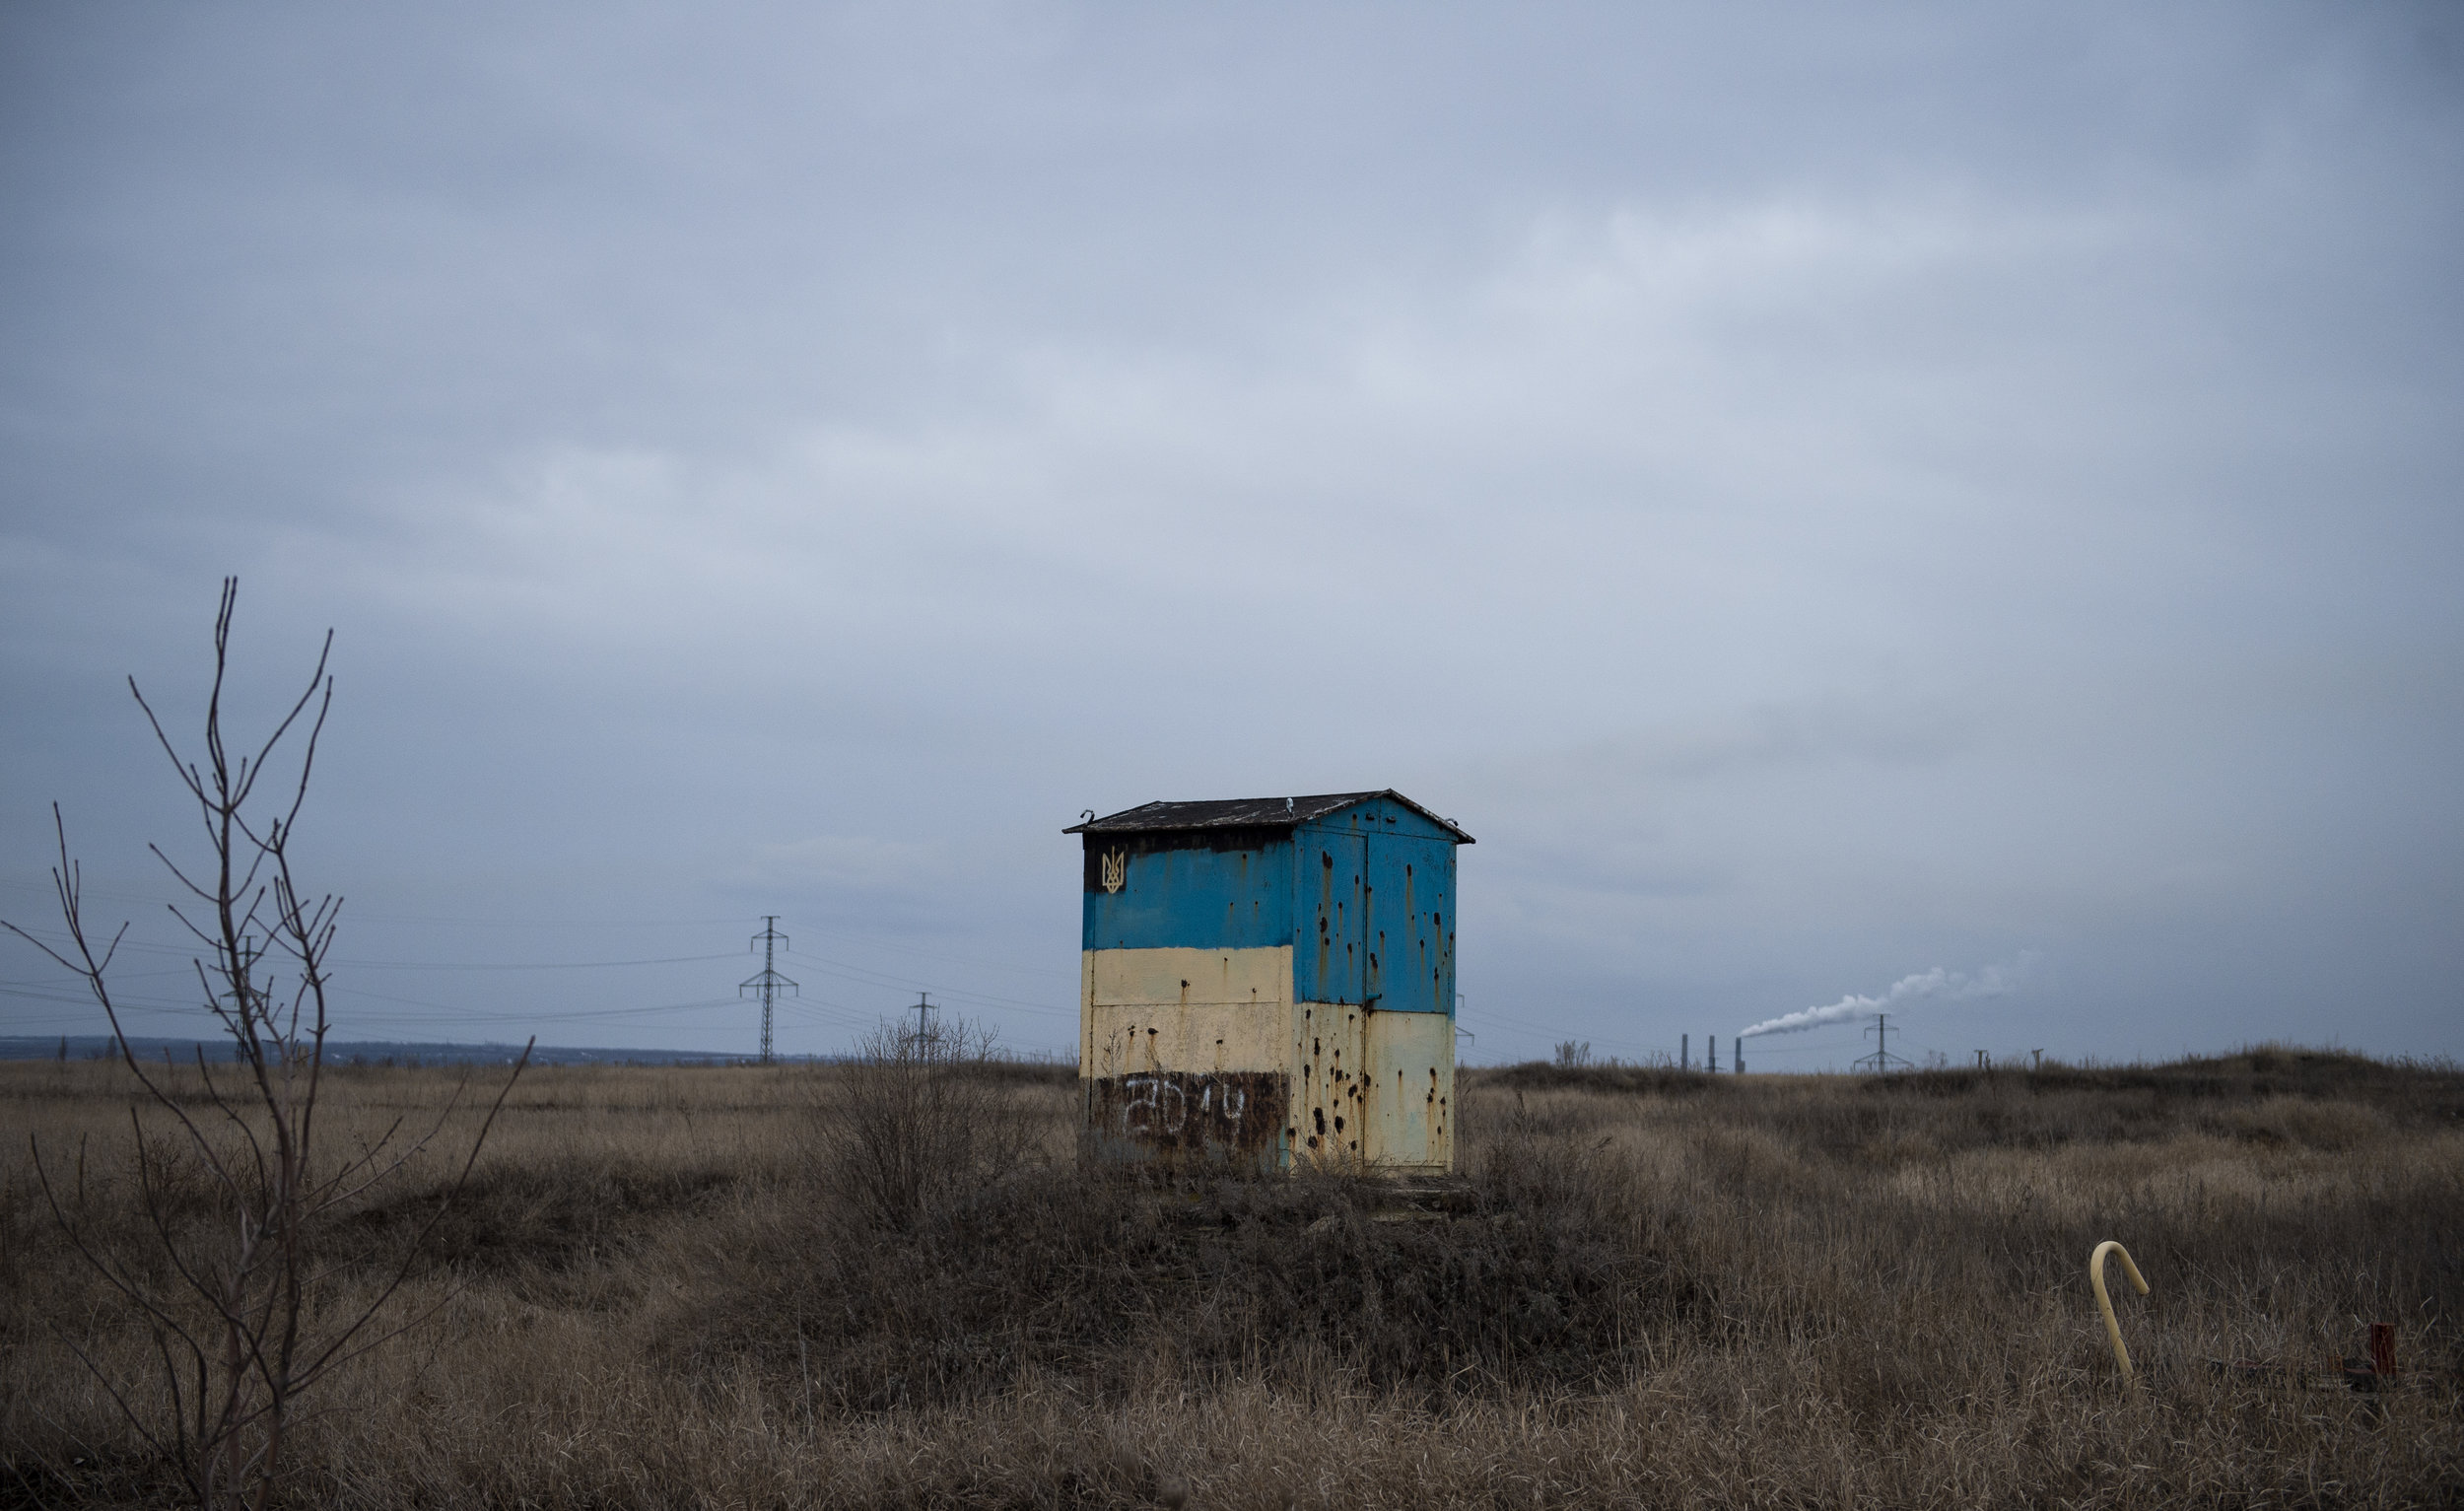 A bullet riddled pump house several kilometers from the nearest town retains the evidence of a vicious battle that raged nearby a few years ago, the Battle of Debaltseve.